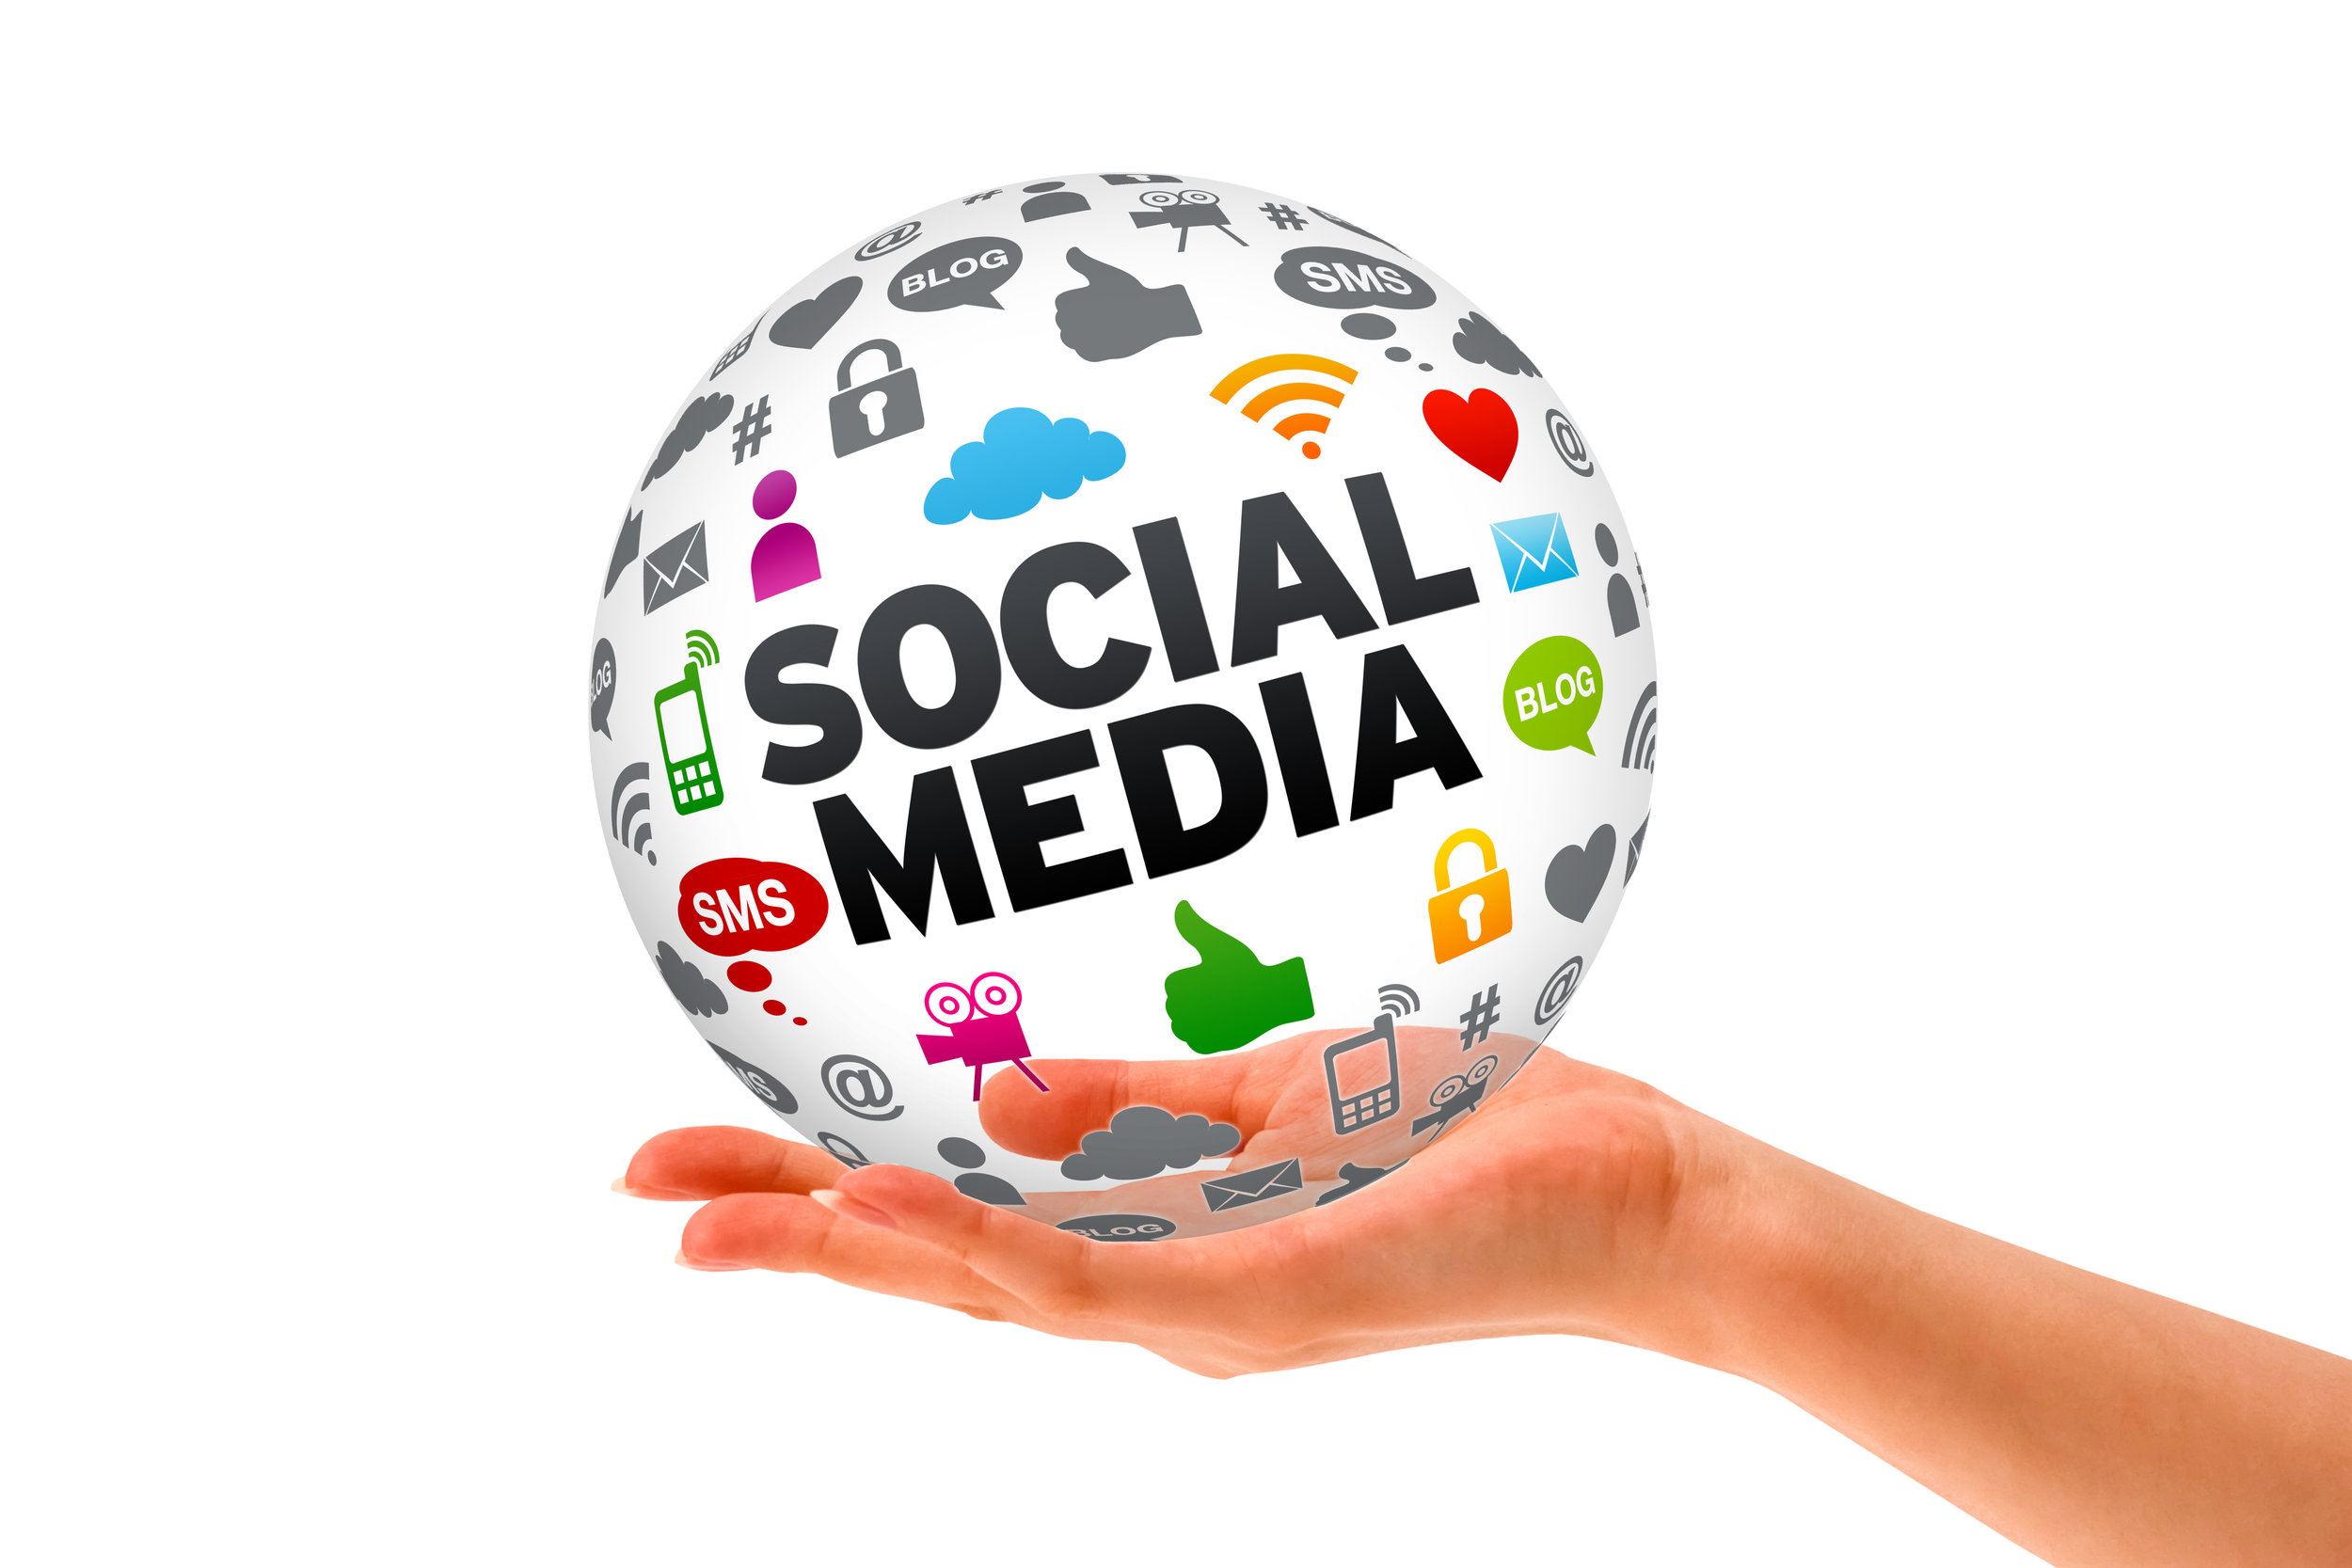 business-plan-social-media.jpg